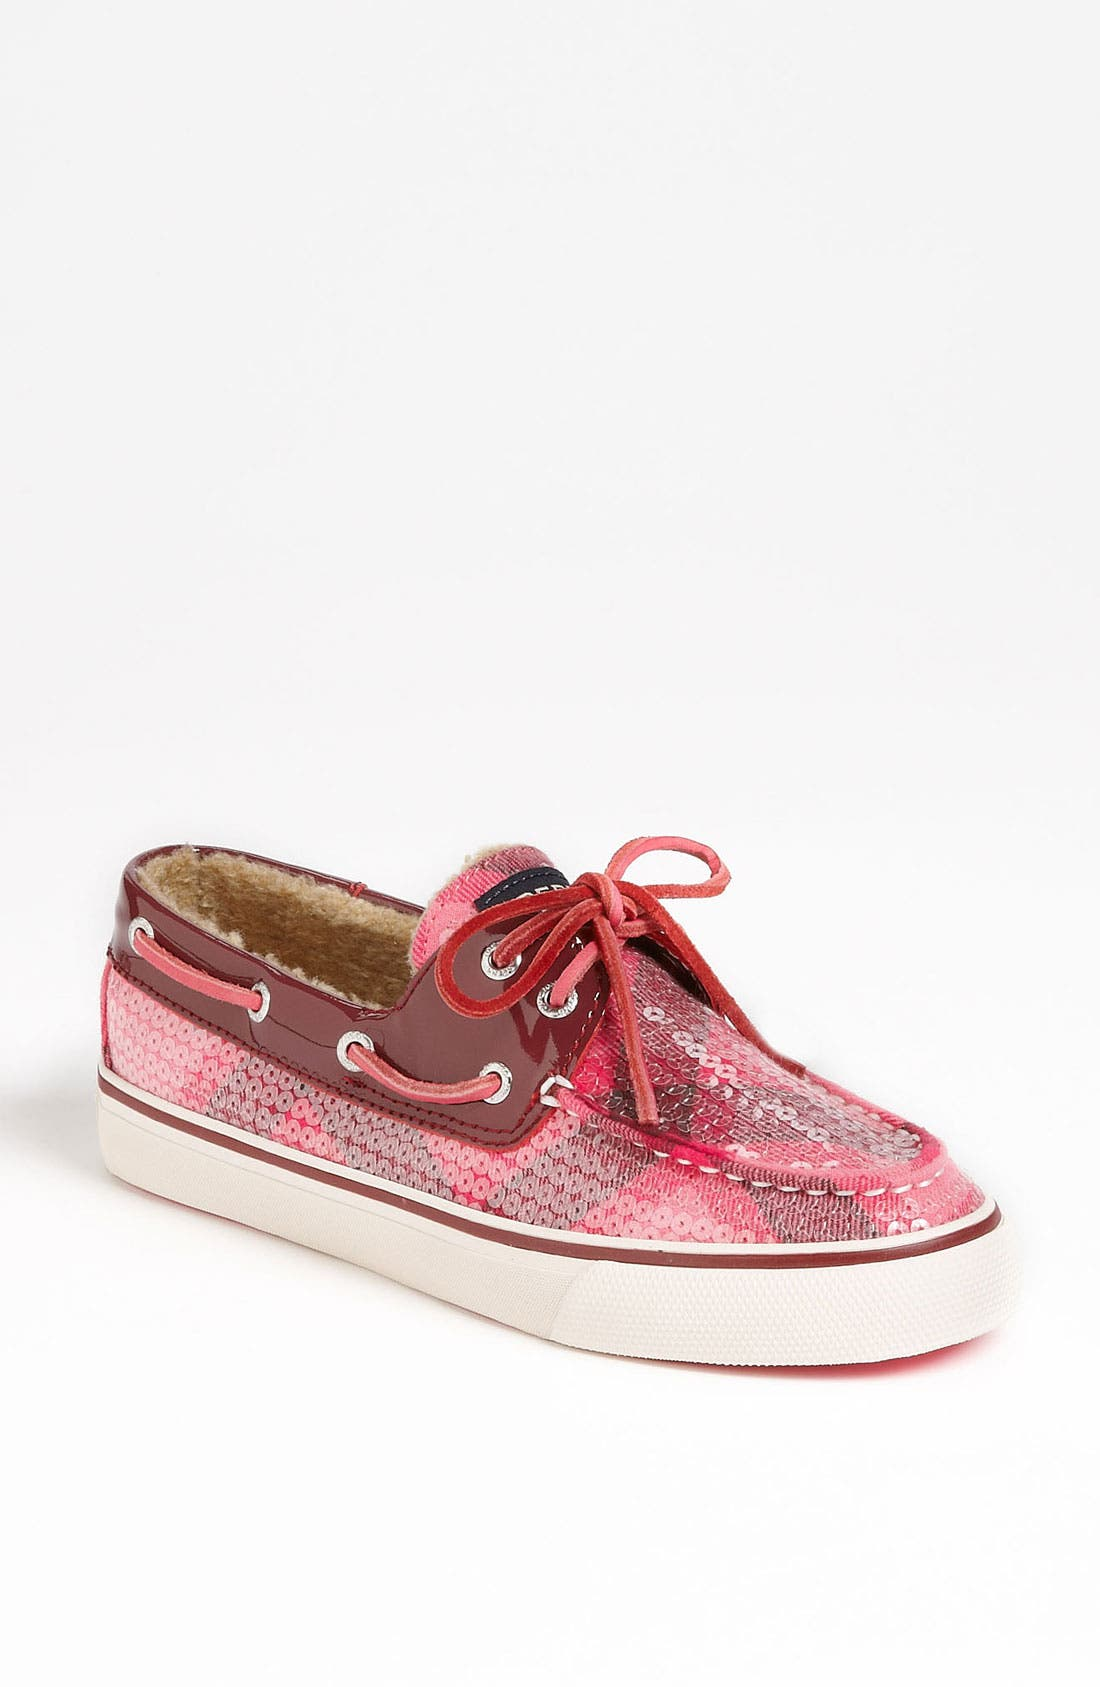 Alternate Image 1 Selected - Sperry Top-Sider® 'Bahama' Sequined Boat Shoe (Online Only)